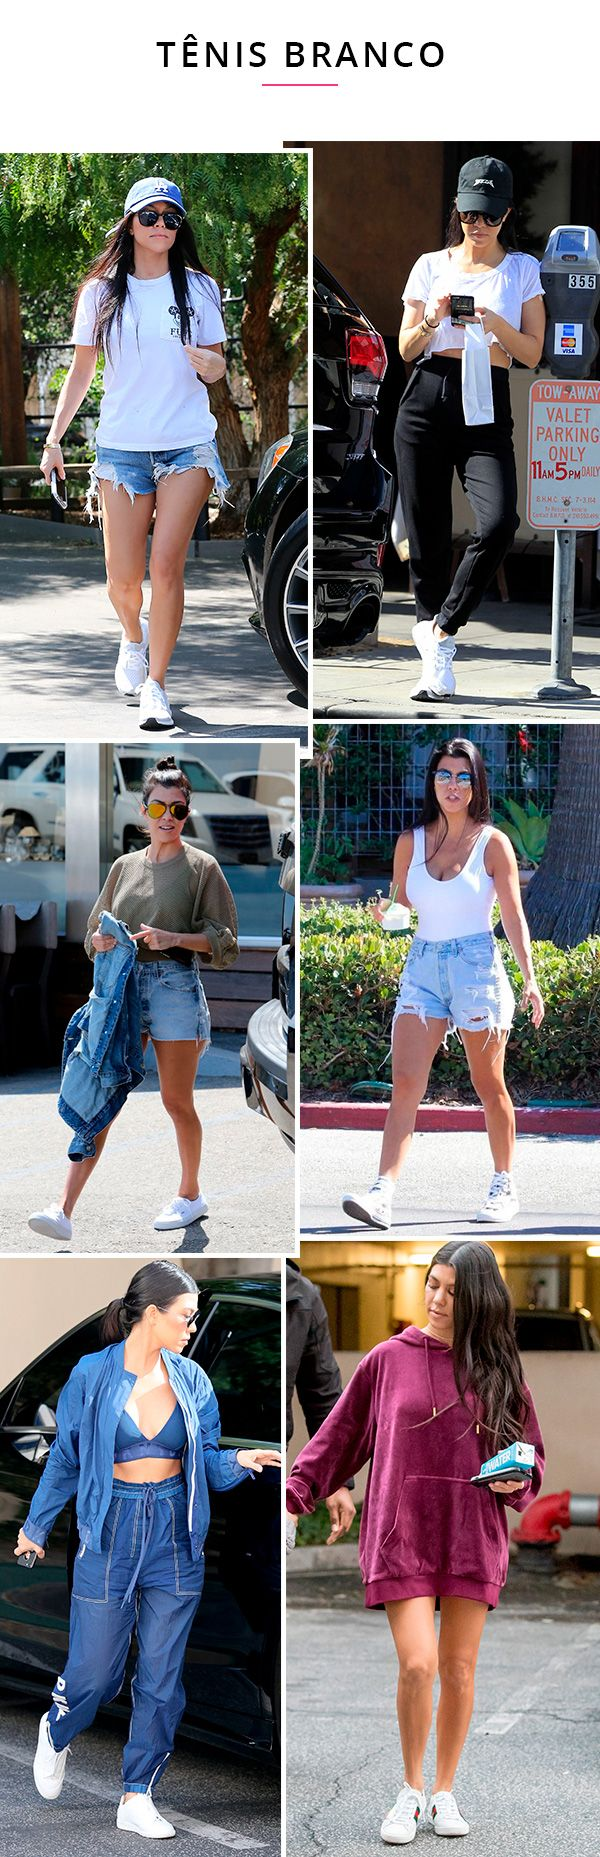 kourtney kardhian usando tenis braNCO